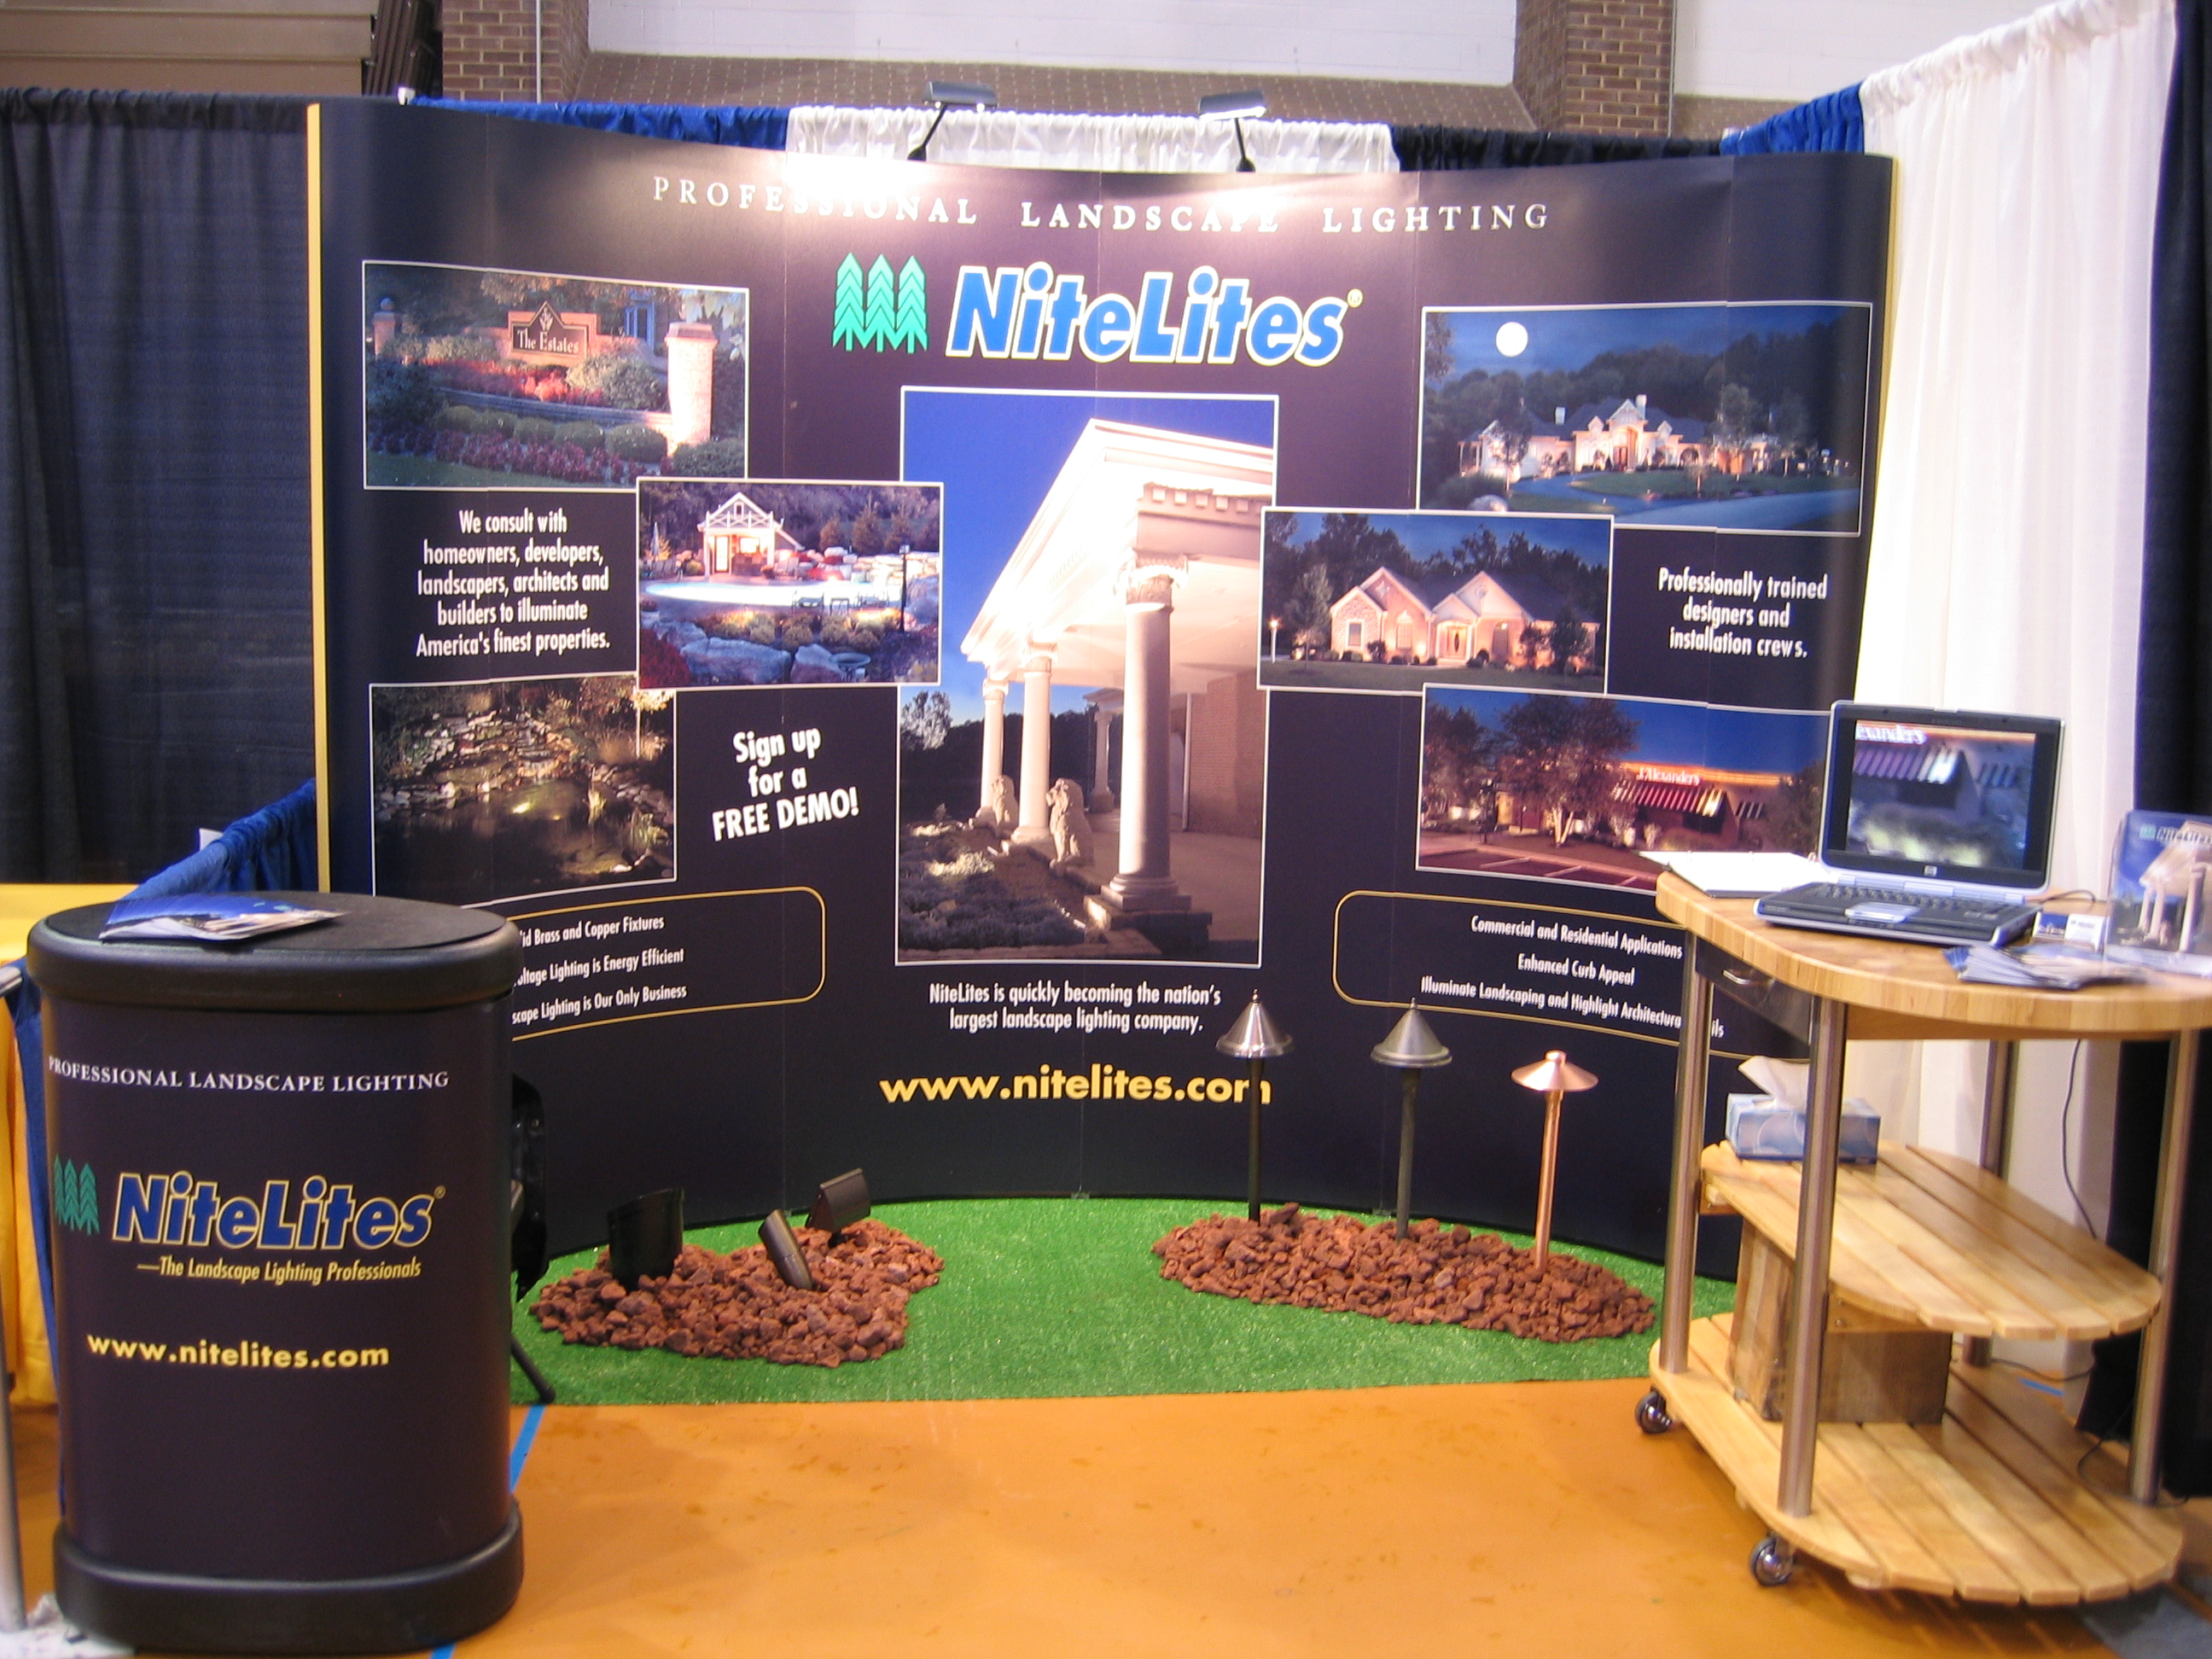 Landscape Lighting Franchise : Nitelites of st louis outdoor lighting franchise glows at